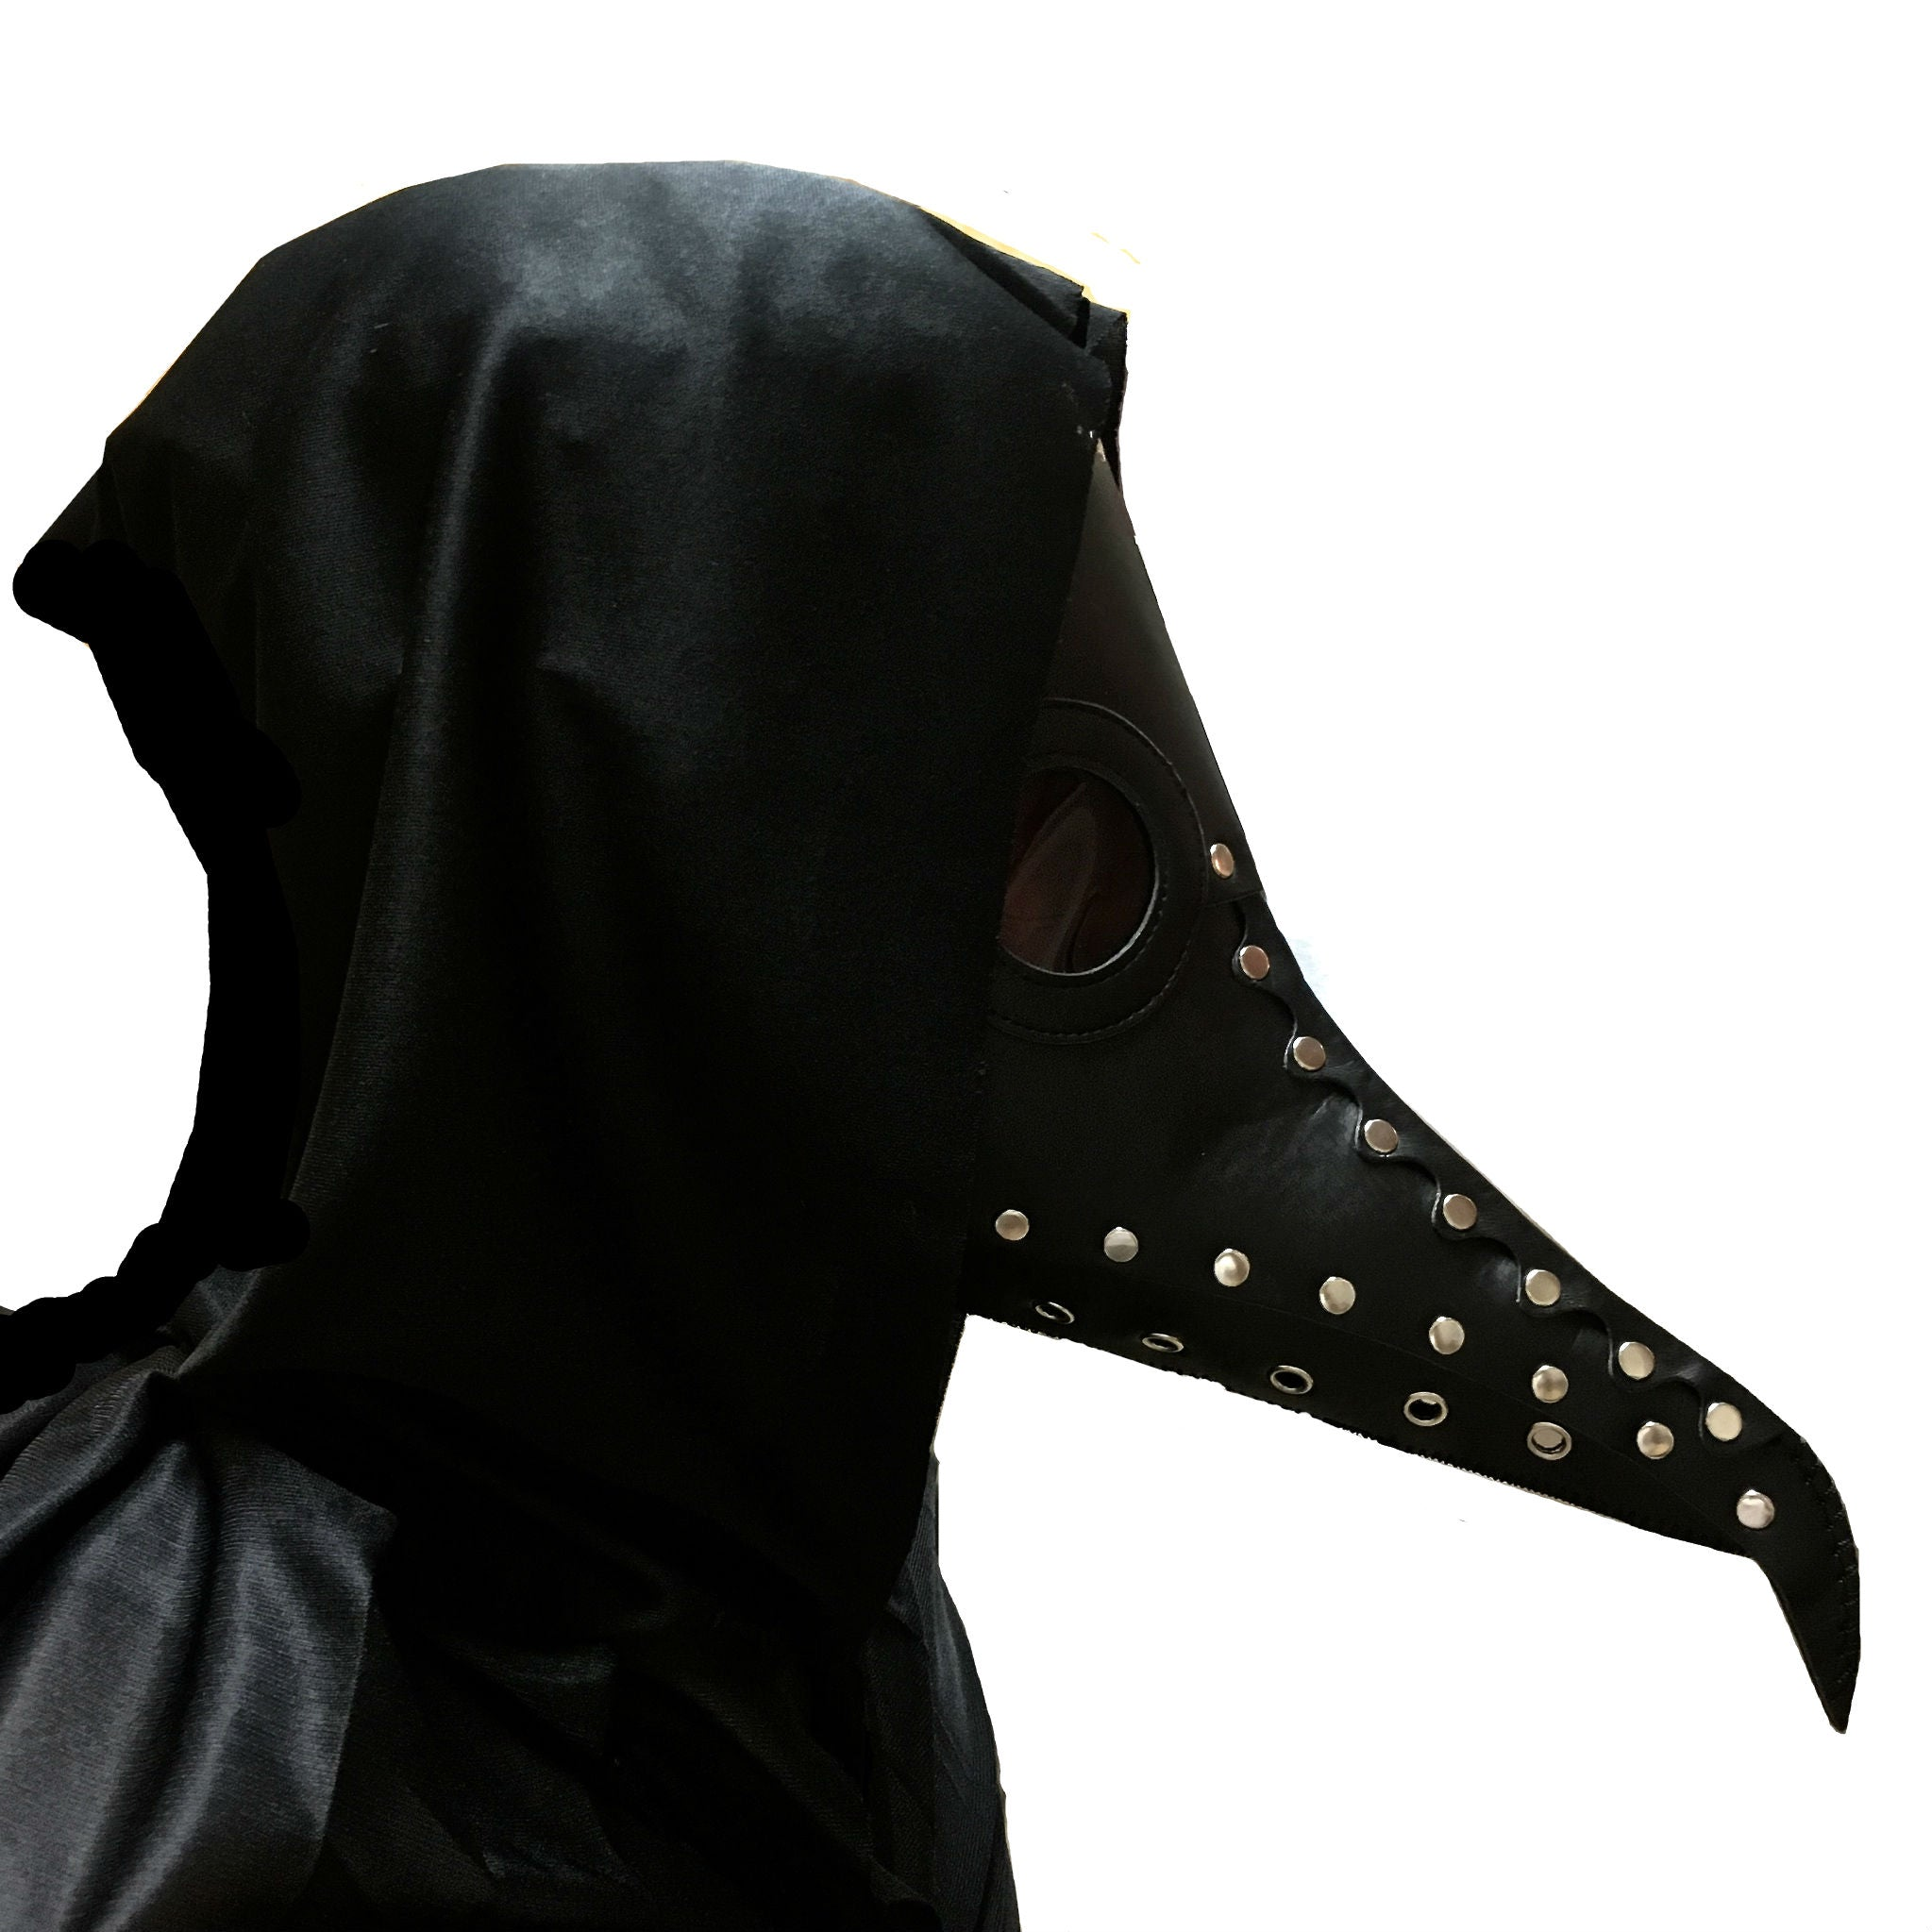 Day Of The Dead - Black Death Plague Doctor - Black